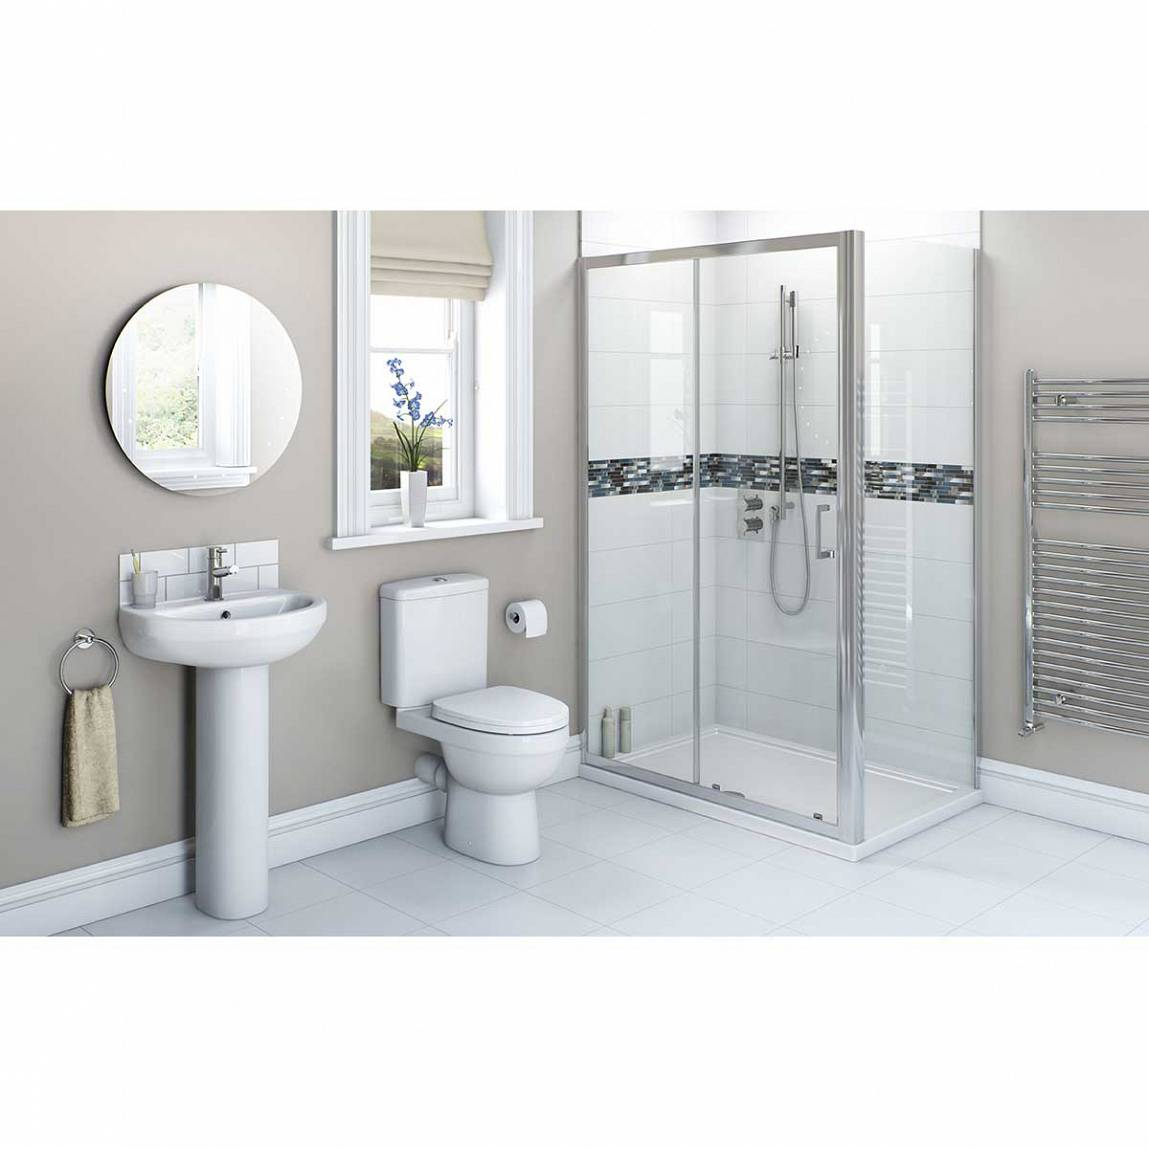 Image of Energy Bathroom set with 1000x700 Sliding Enclosure & Tray